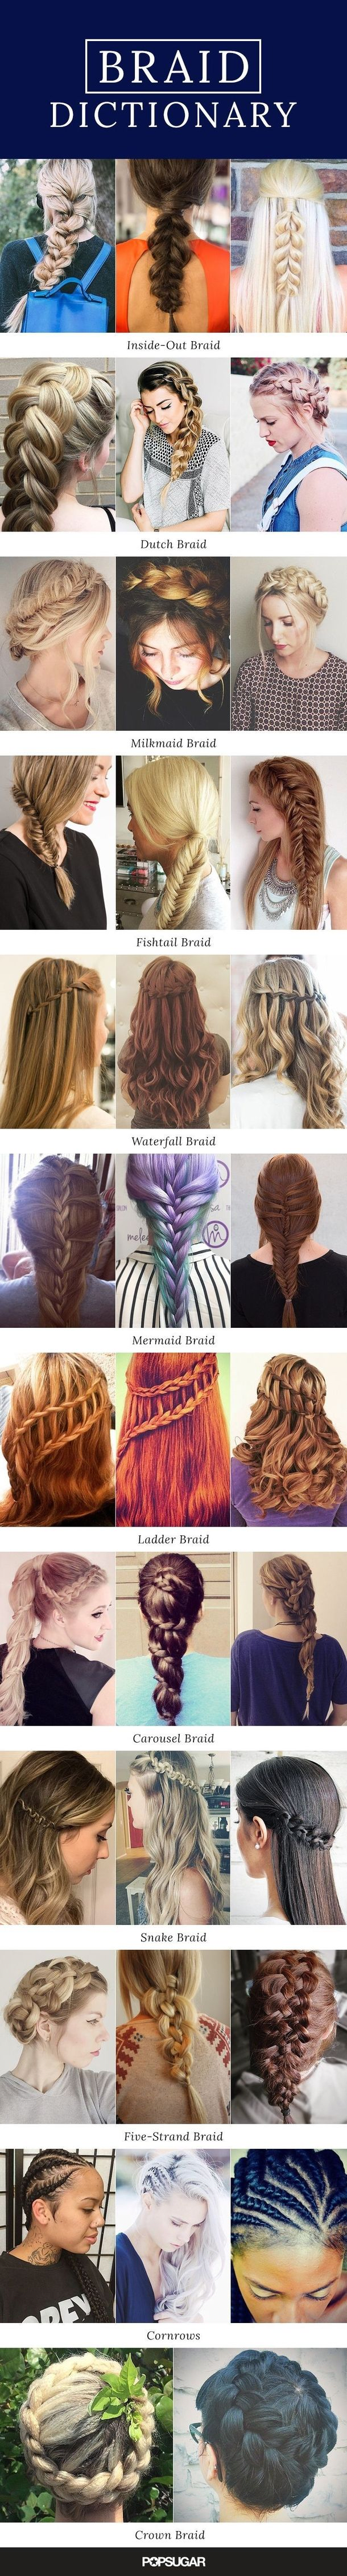 125 Beautiful Hair Braids For You To Try hair braid long hair braids hair ideas braided hair hairstyles short hair medium hair diy braids